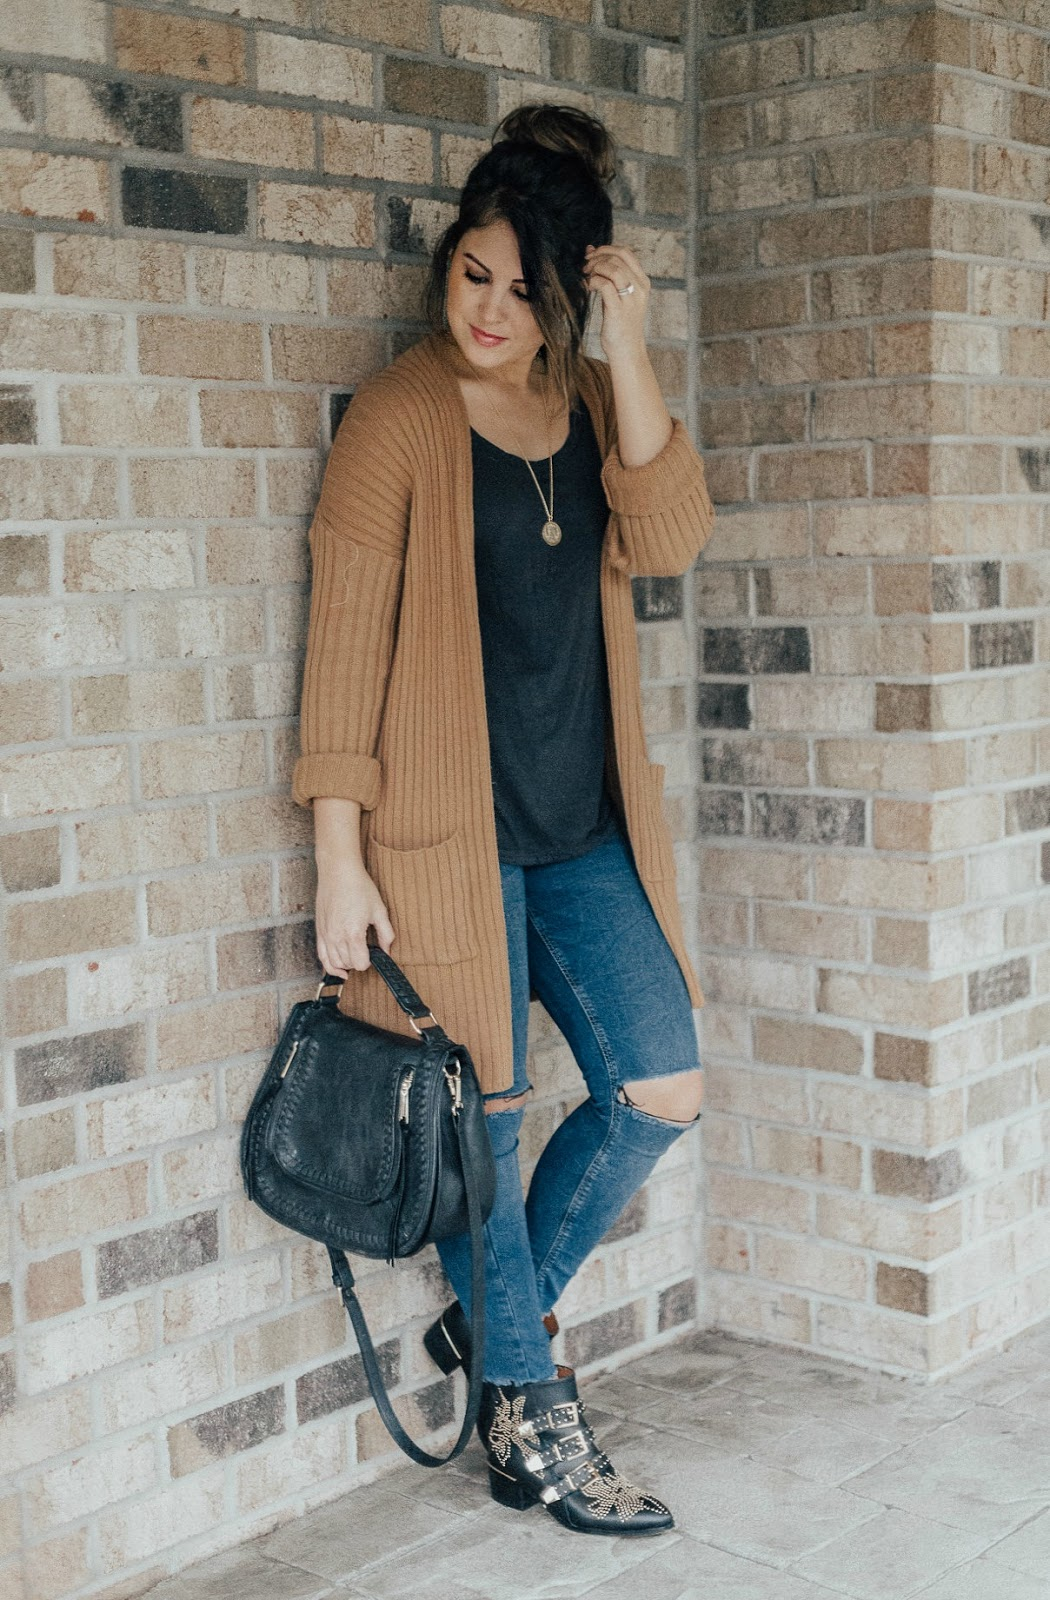 life and messy hair, xo samantha brooke, samantha brooke, nc blogger, chloe studded bootie dupes